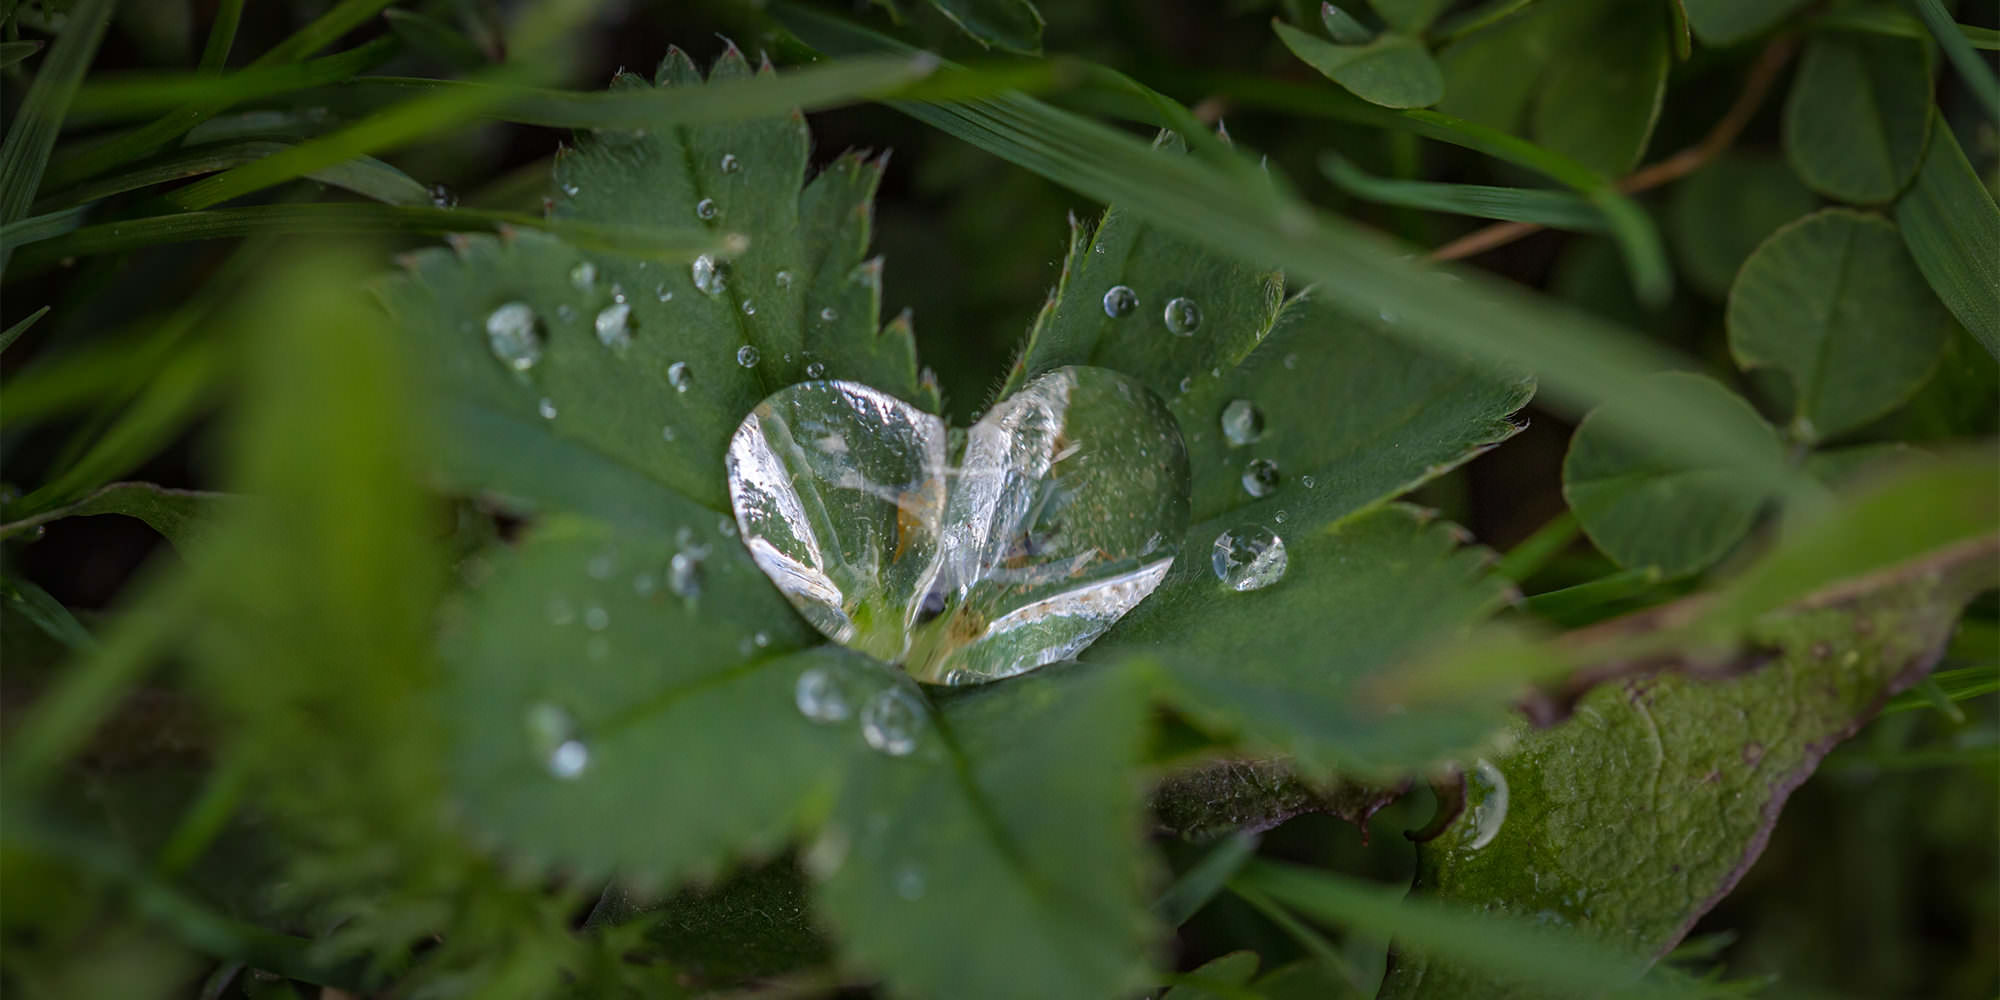 A tiny green leaf in the grass, with a small droplet of water on it. The droplet of water happens to be shaped like a heart.